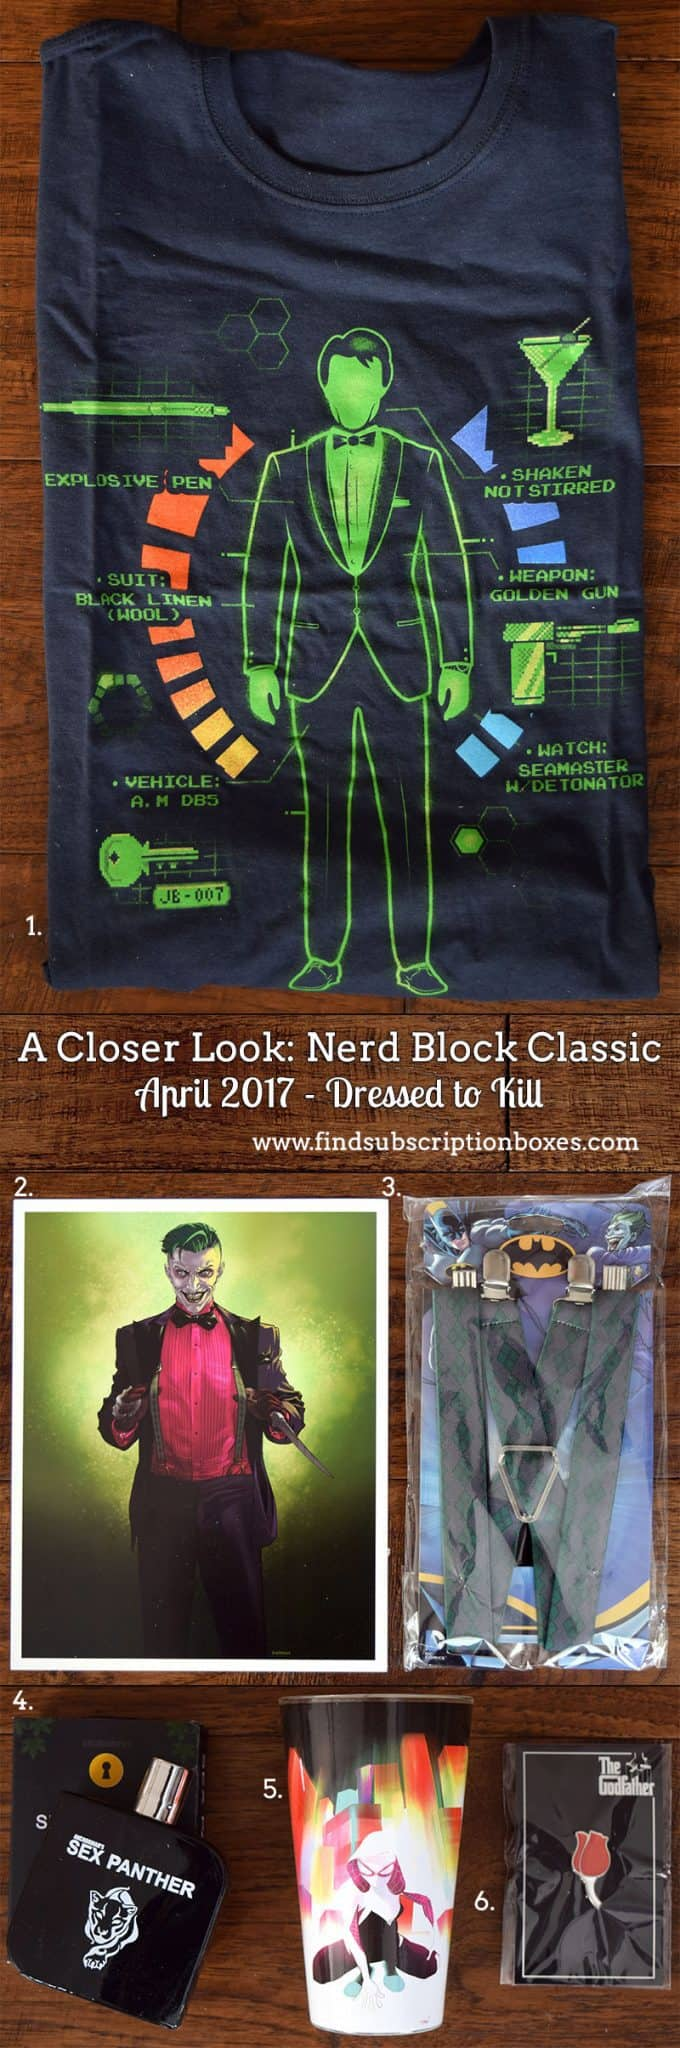 April 2017 Nerd Block Classic Review - Dressed to Kill - Inside the Box